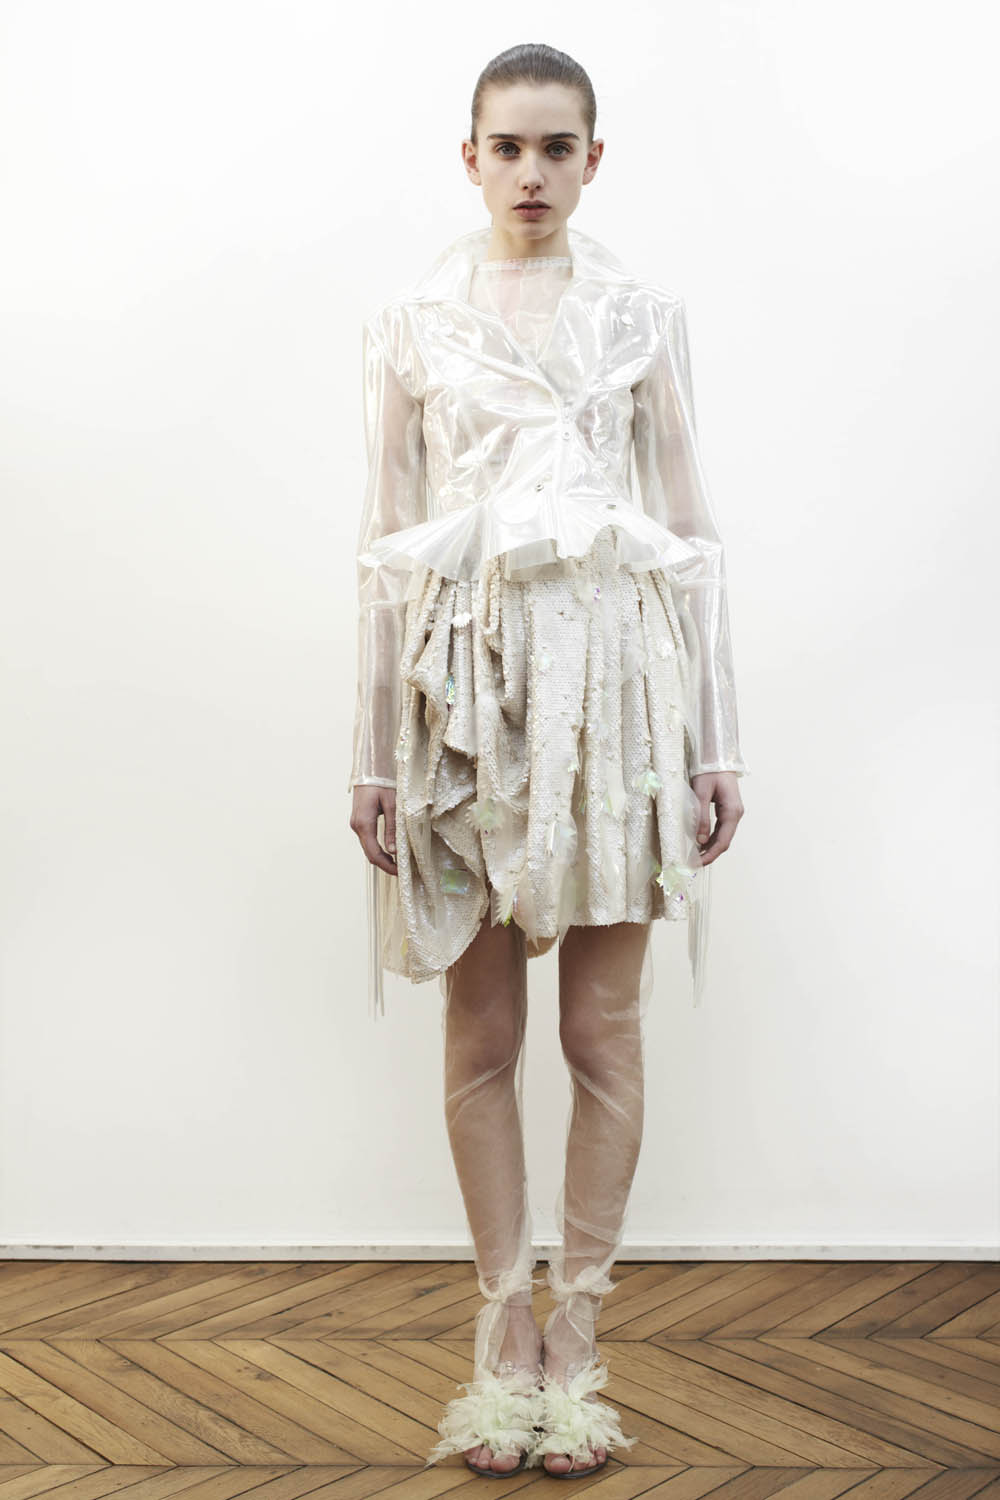 Hyeres fashion contest dress